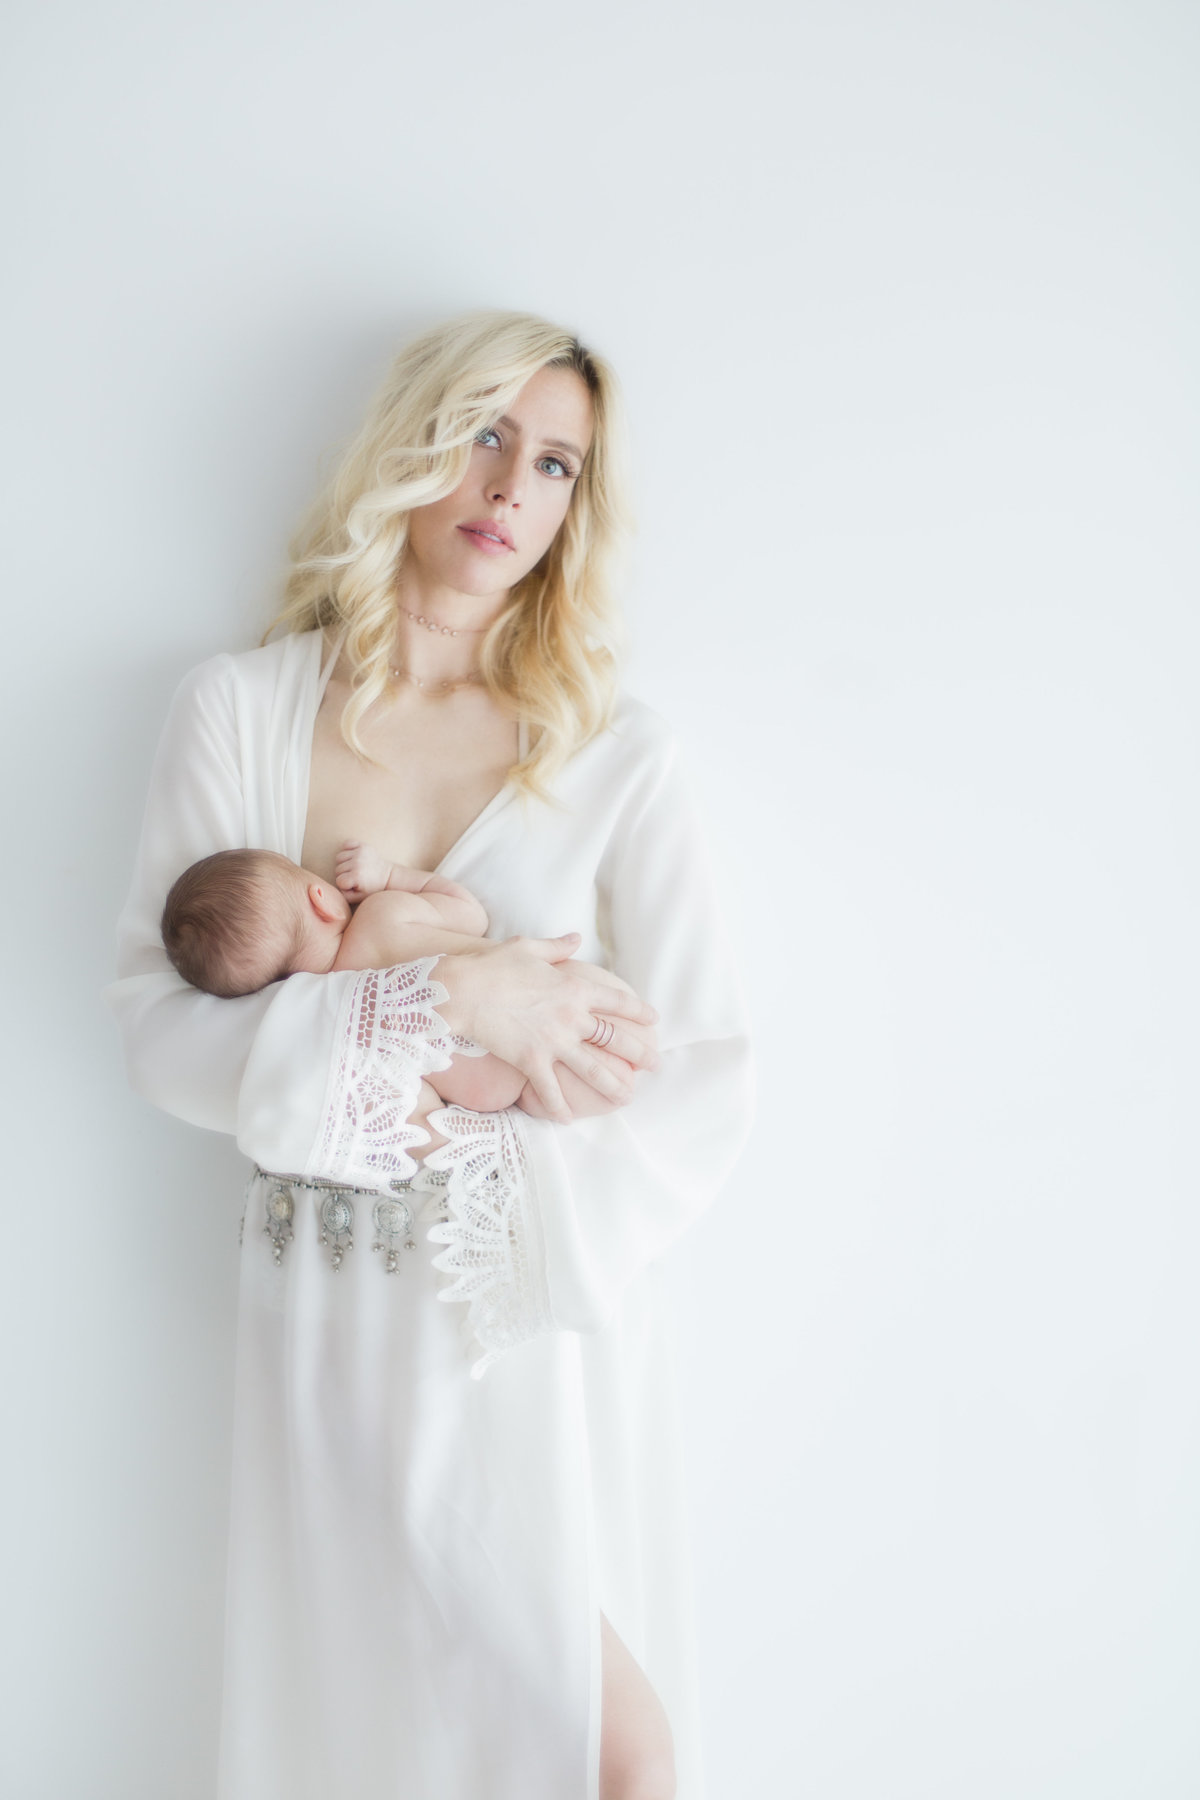 Los-Angeles-Newborn-Photographer-Christine-Sara-Sage-14